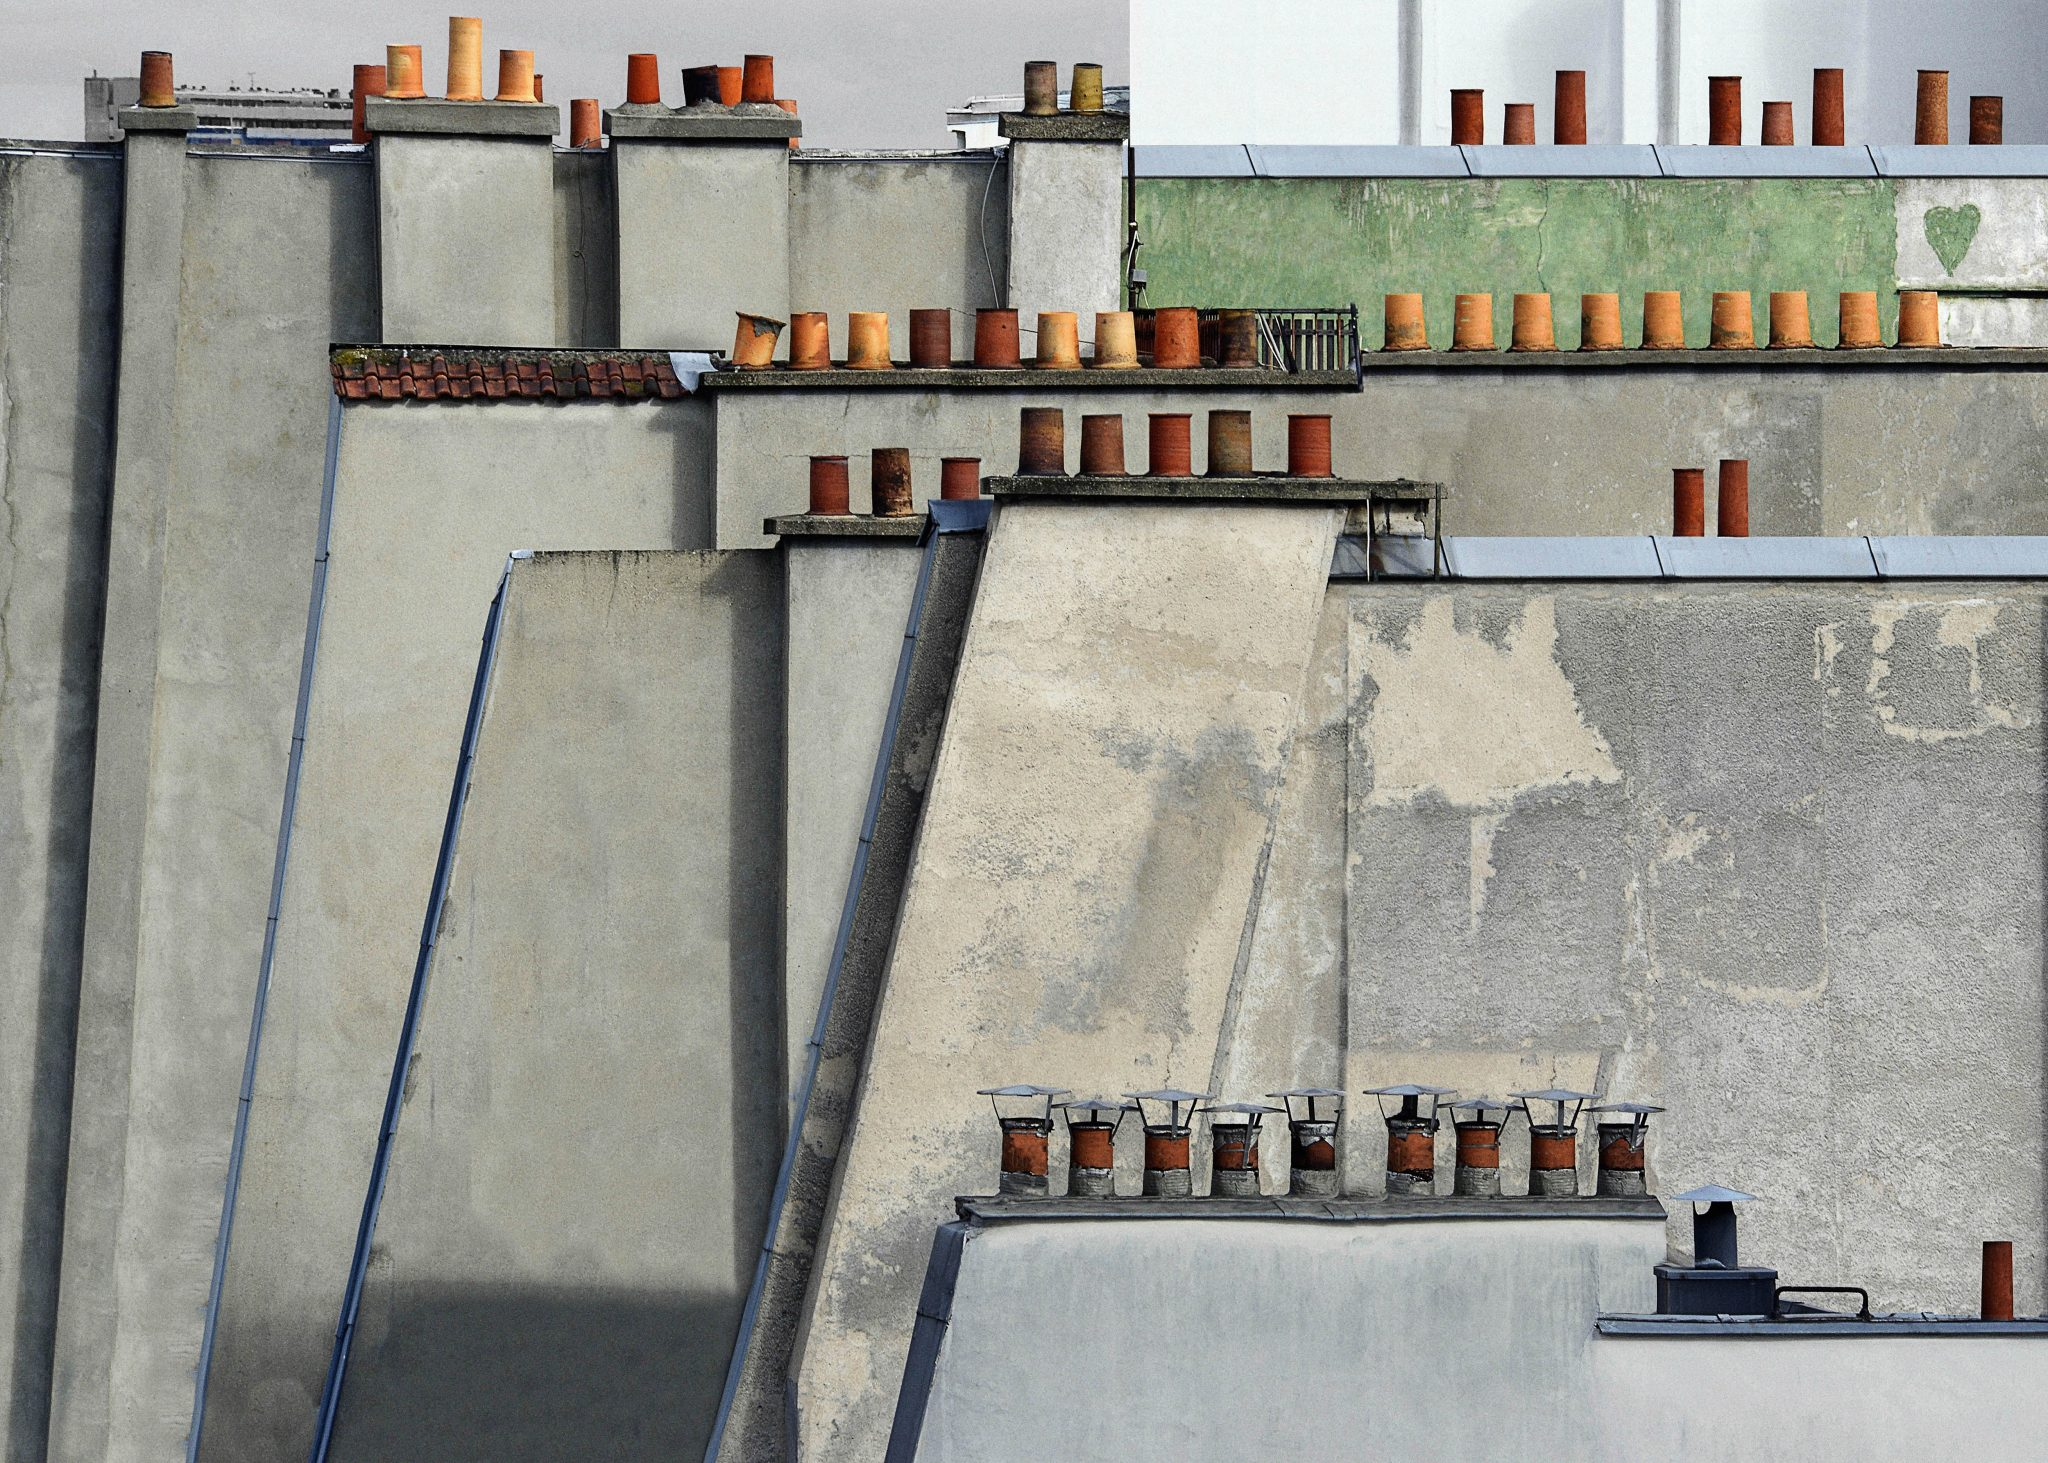 ©Michael Wolf Paris Rooftops Paris, 2014 Digital C-prints, wooden frame, museum glass 105 x 145,5 cm